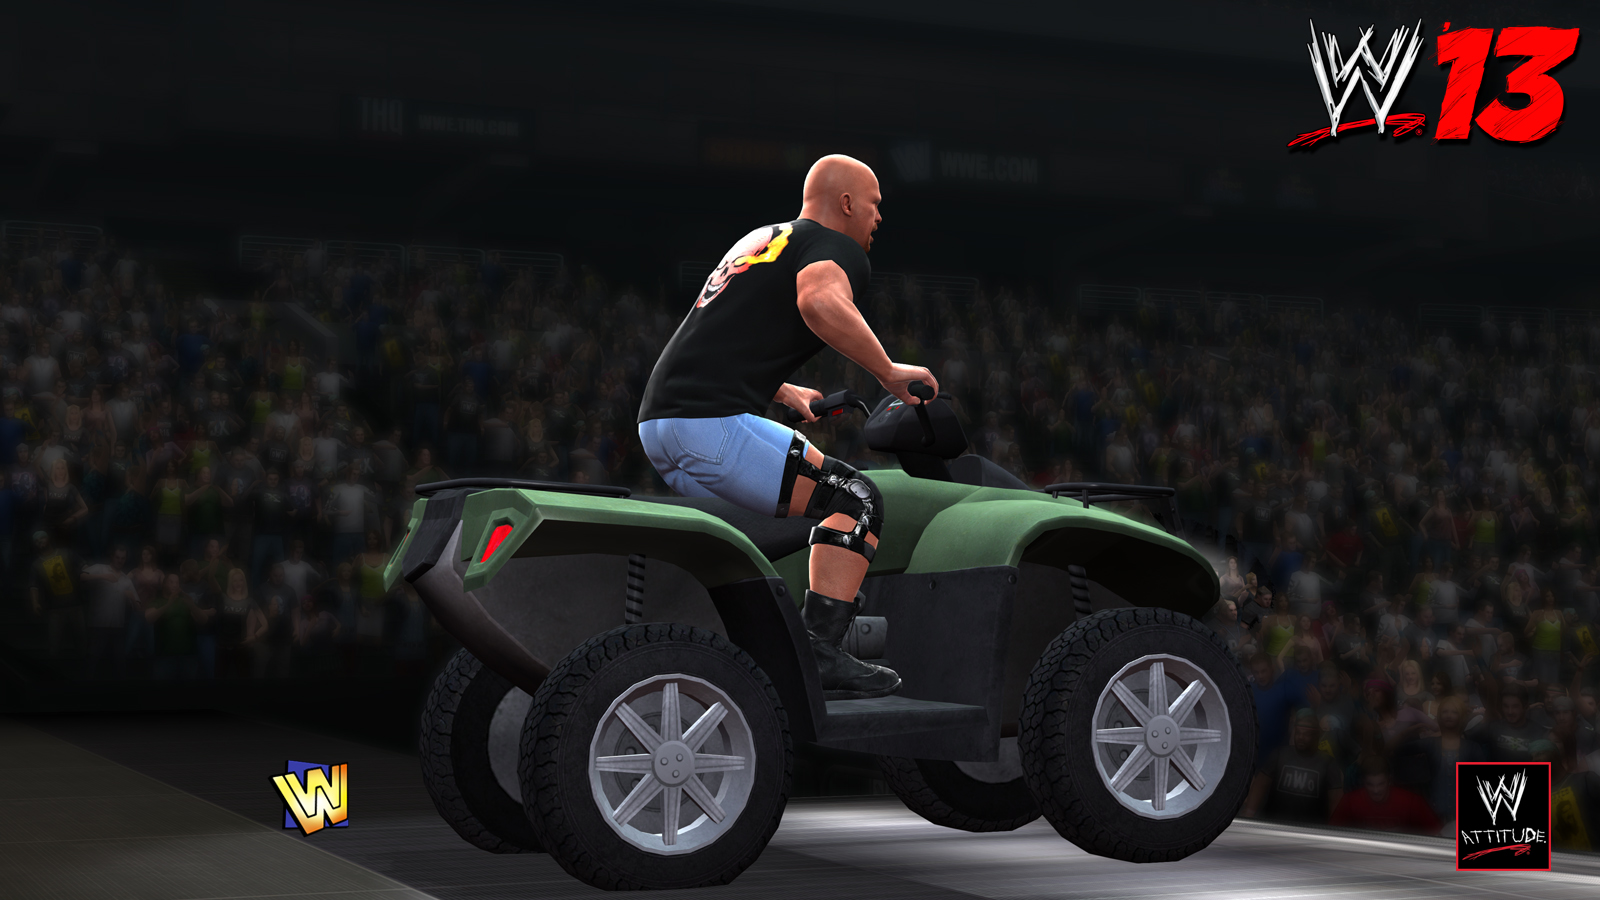 WWE 13 - CE Features Steve Austin 01